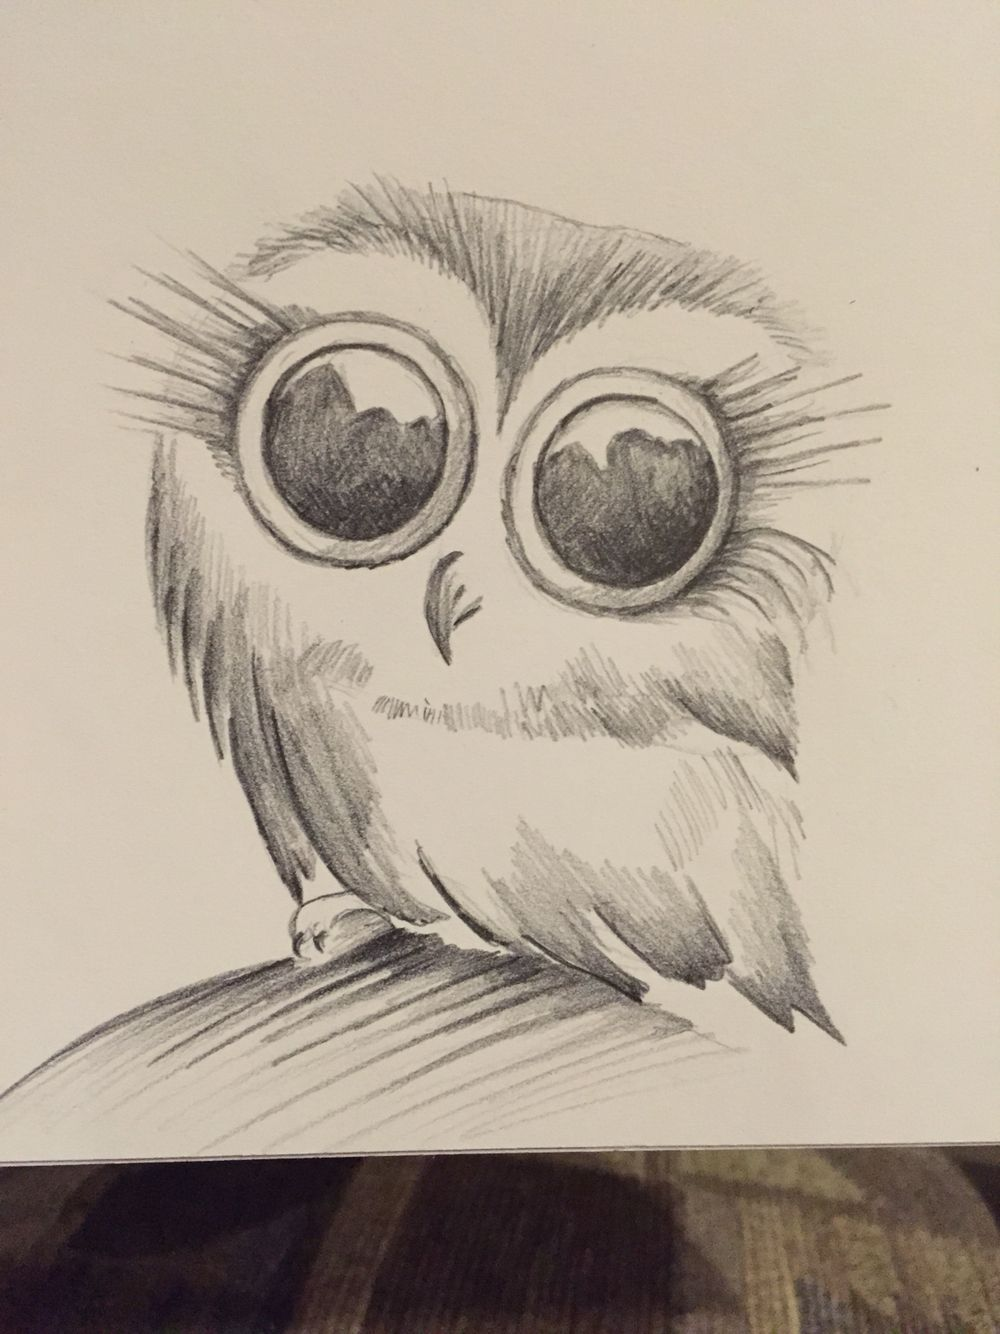 Little Owl Sketch Pencil Sketches Pinterest Owl